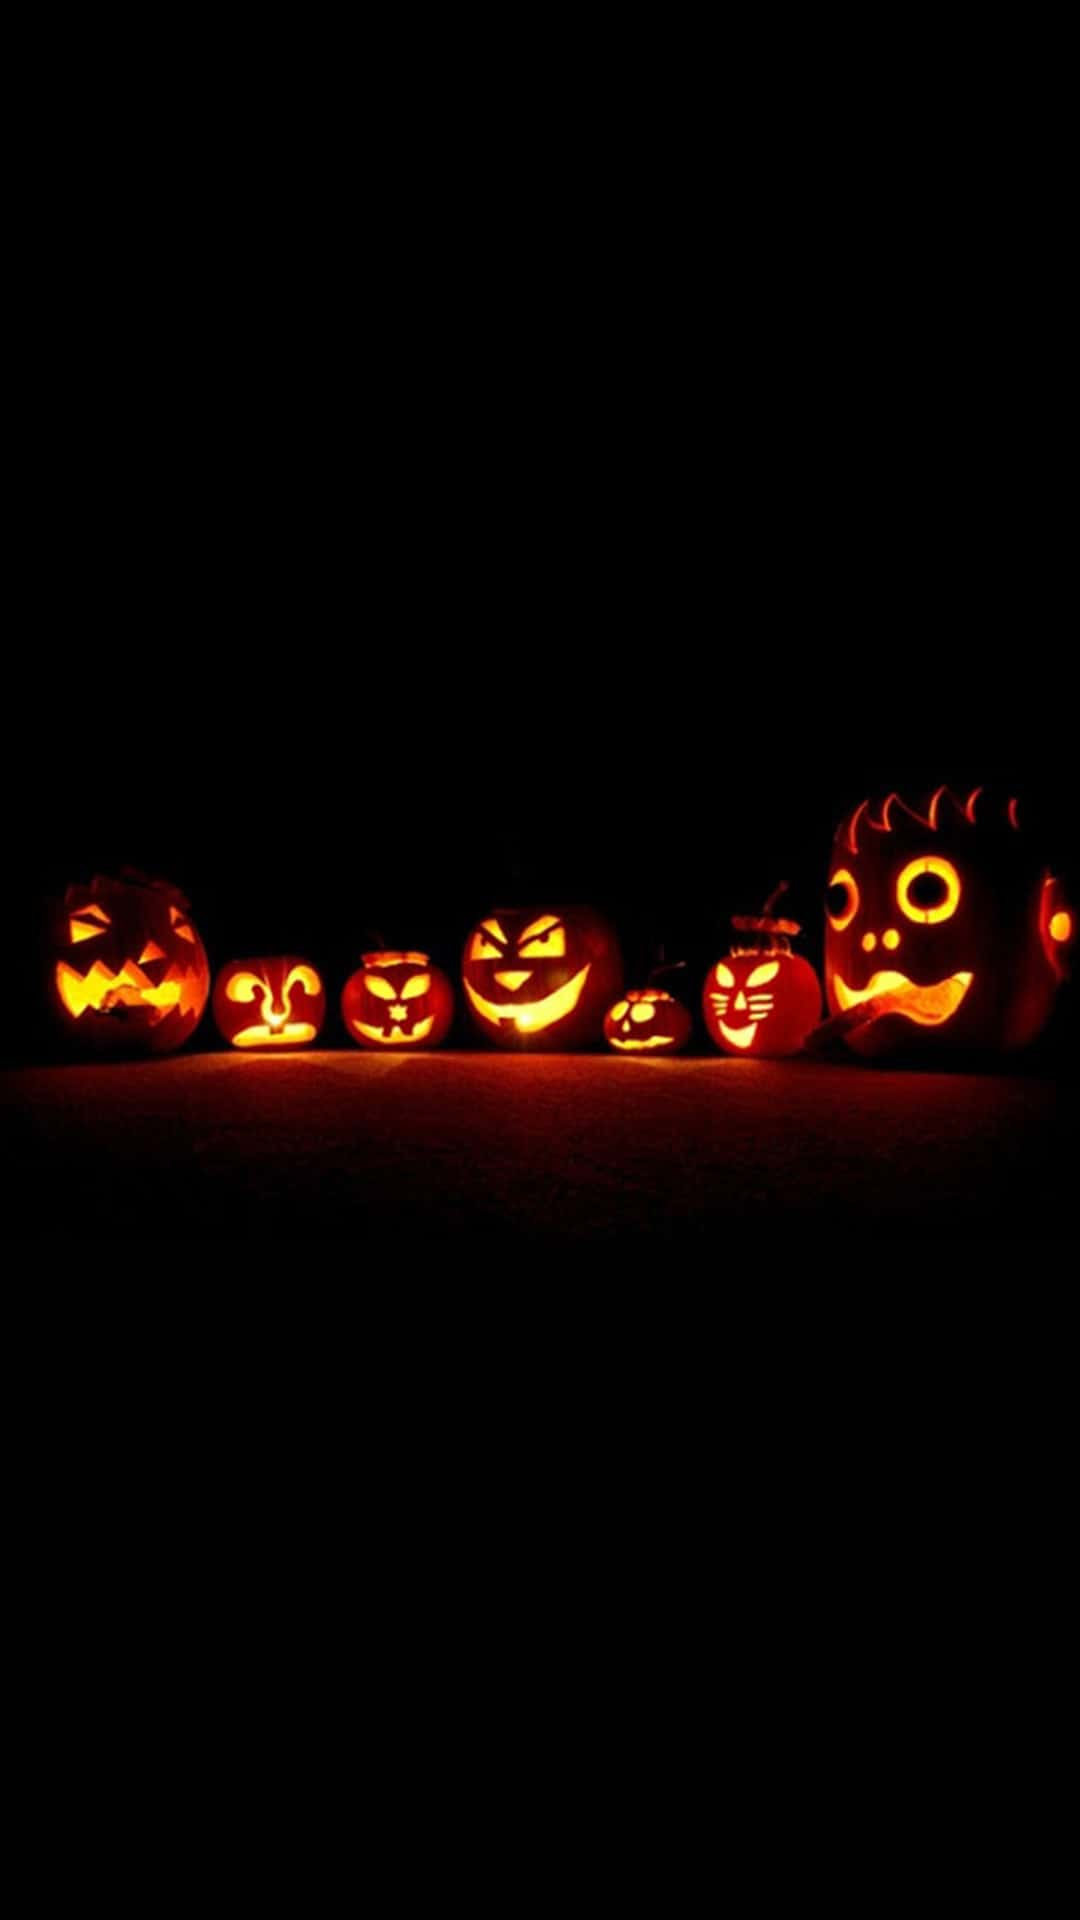 Glowing Halloween Pumpkins Android Wallpaper